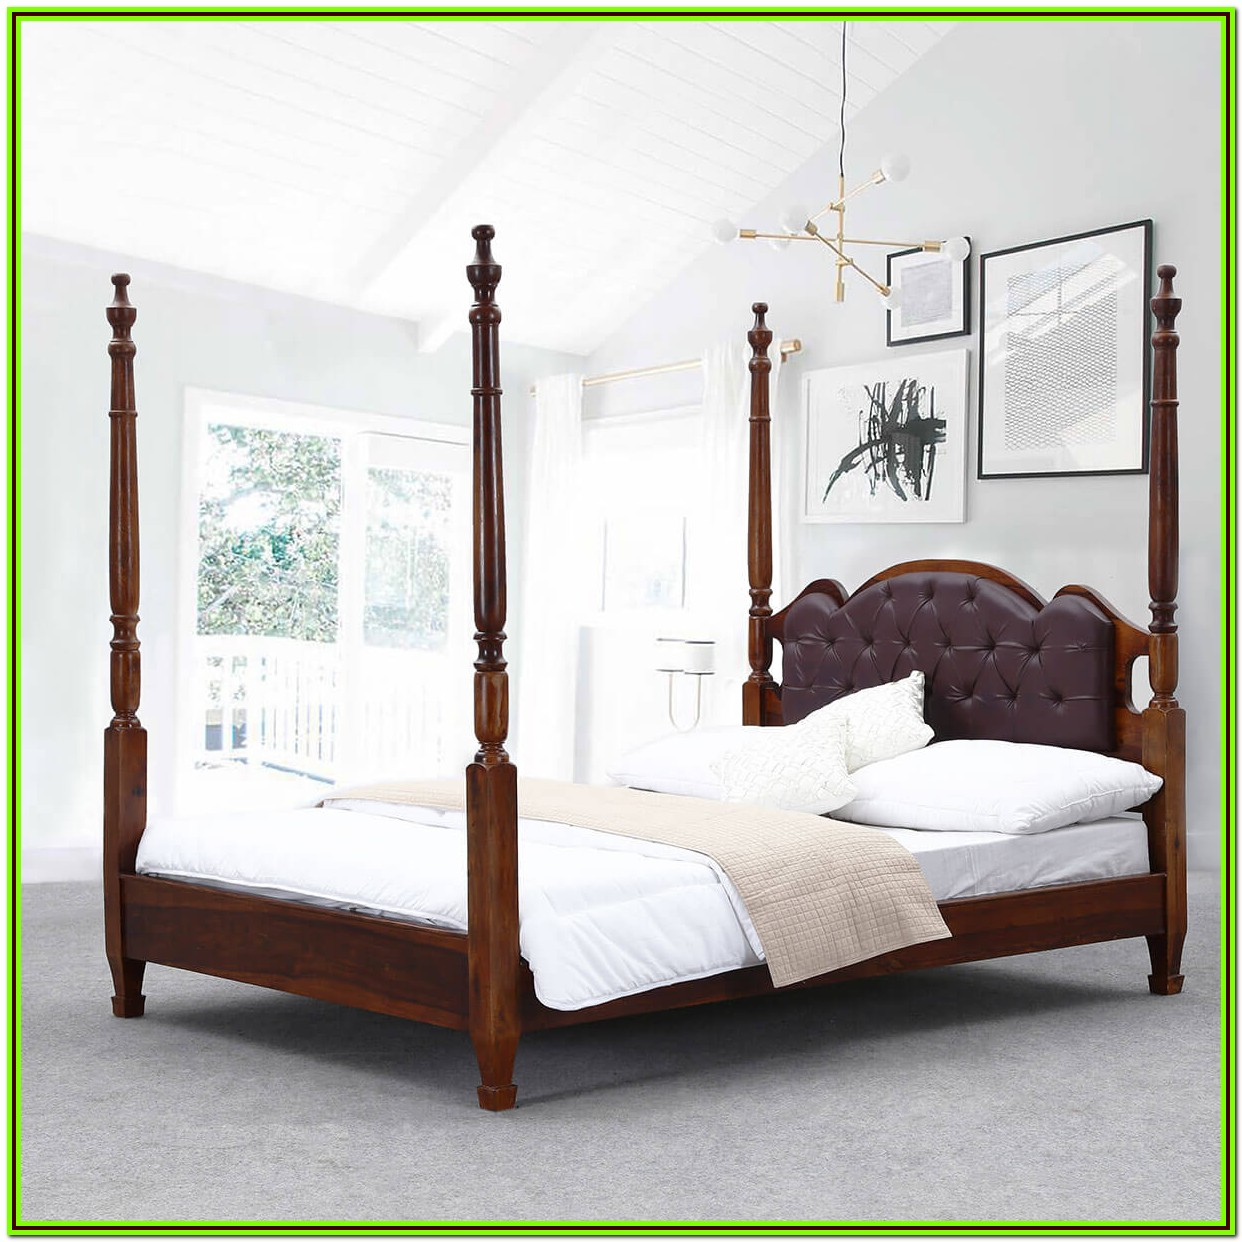 4 Poster King Bed Frame